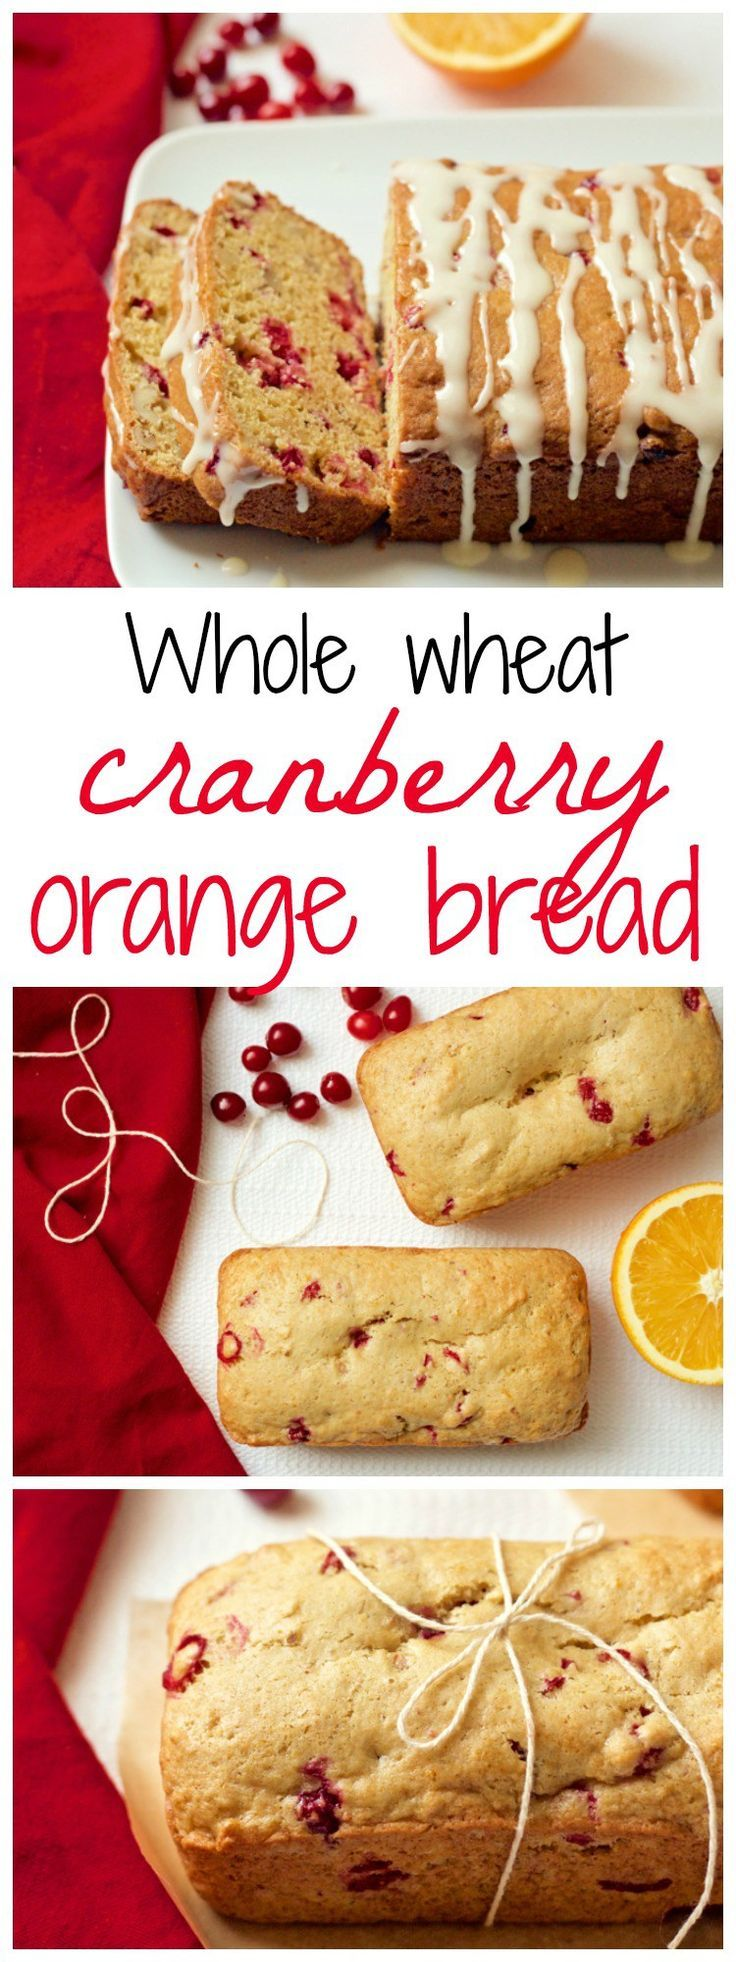 Whole wheat orange cranberry bread (with an optional citrus glaze) can be made as a large loaf or mini loaves - great for gifts or a holiday brunch!